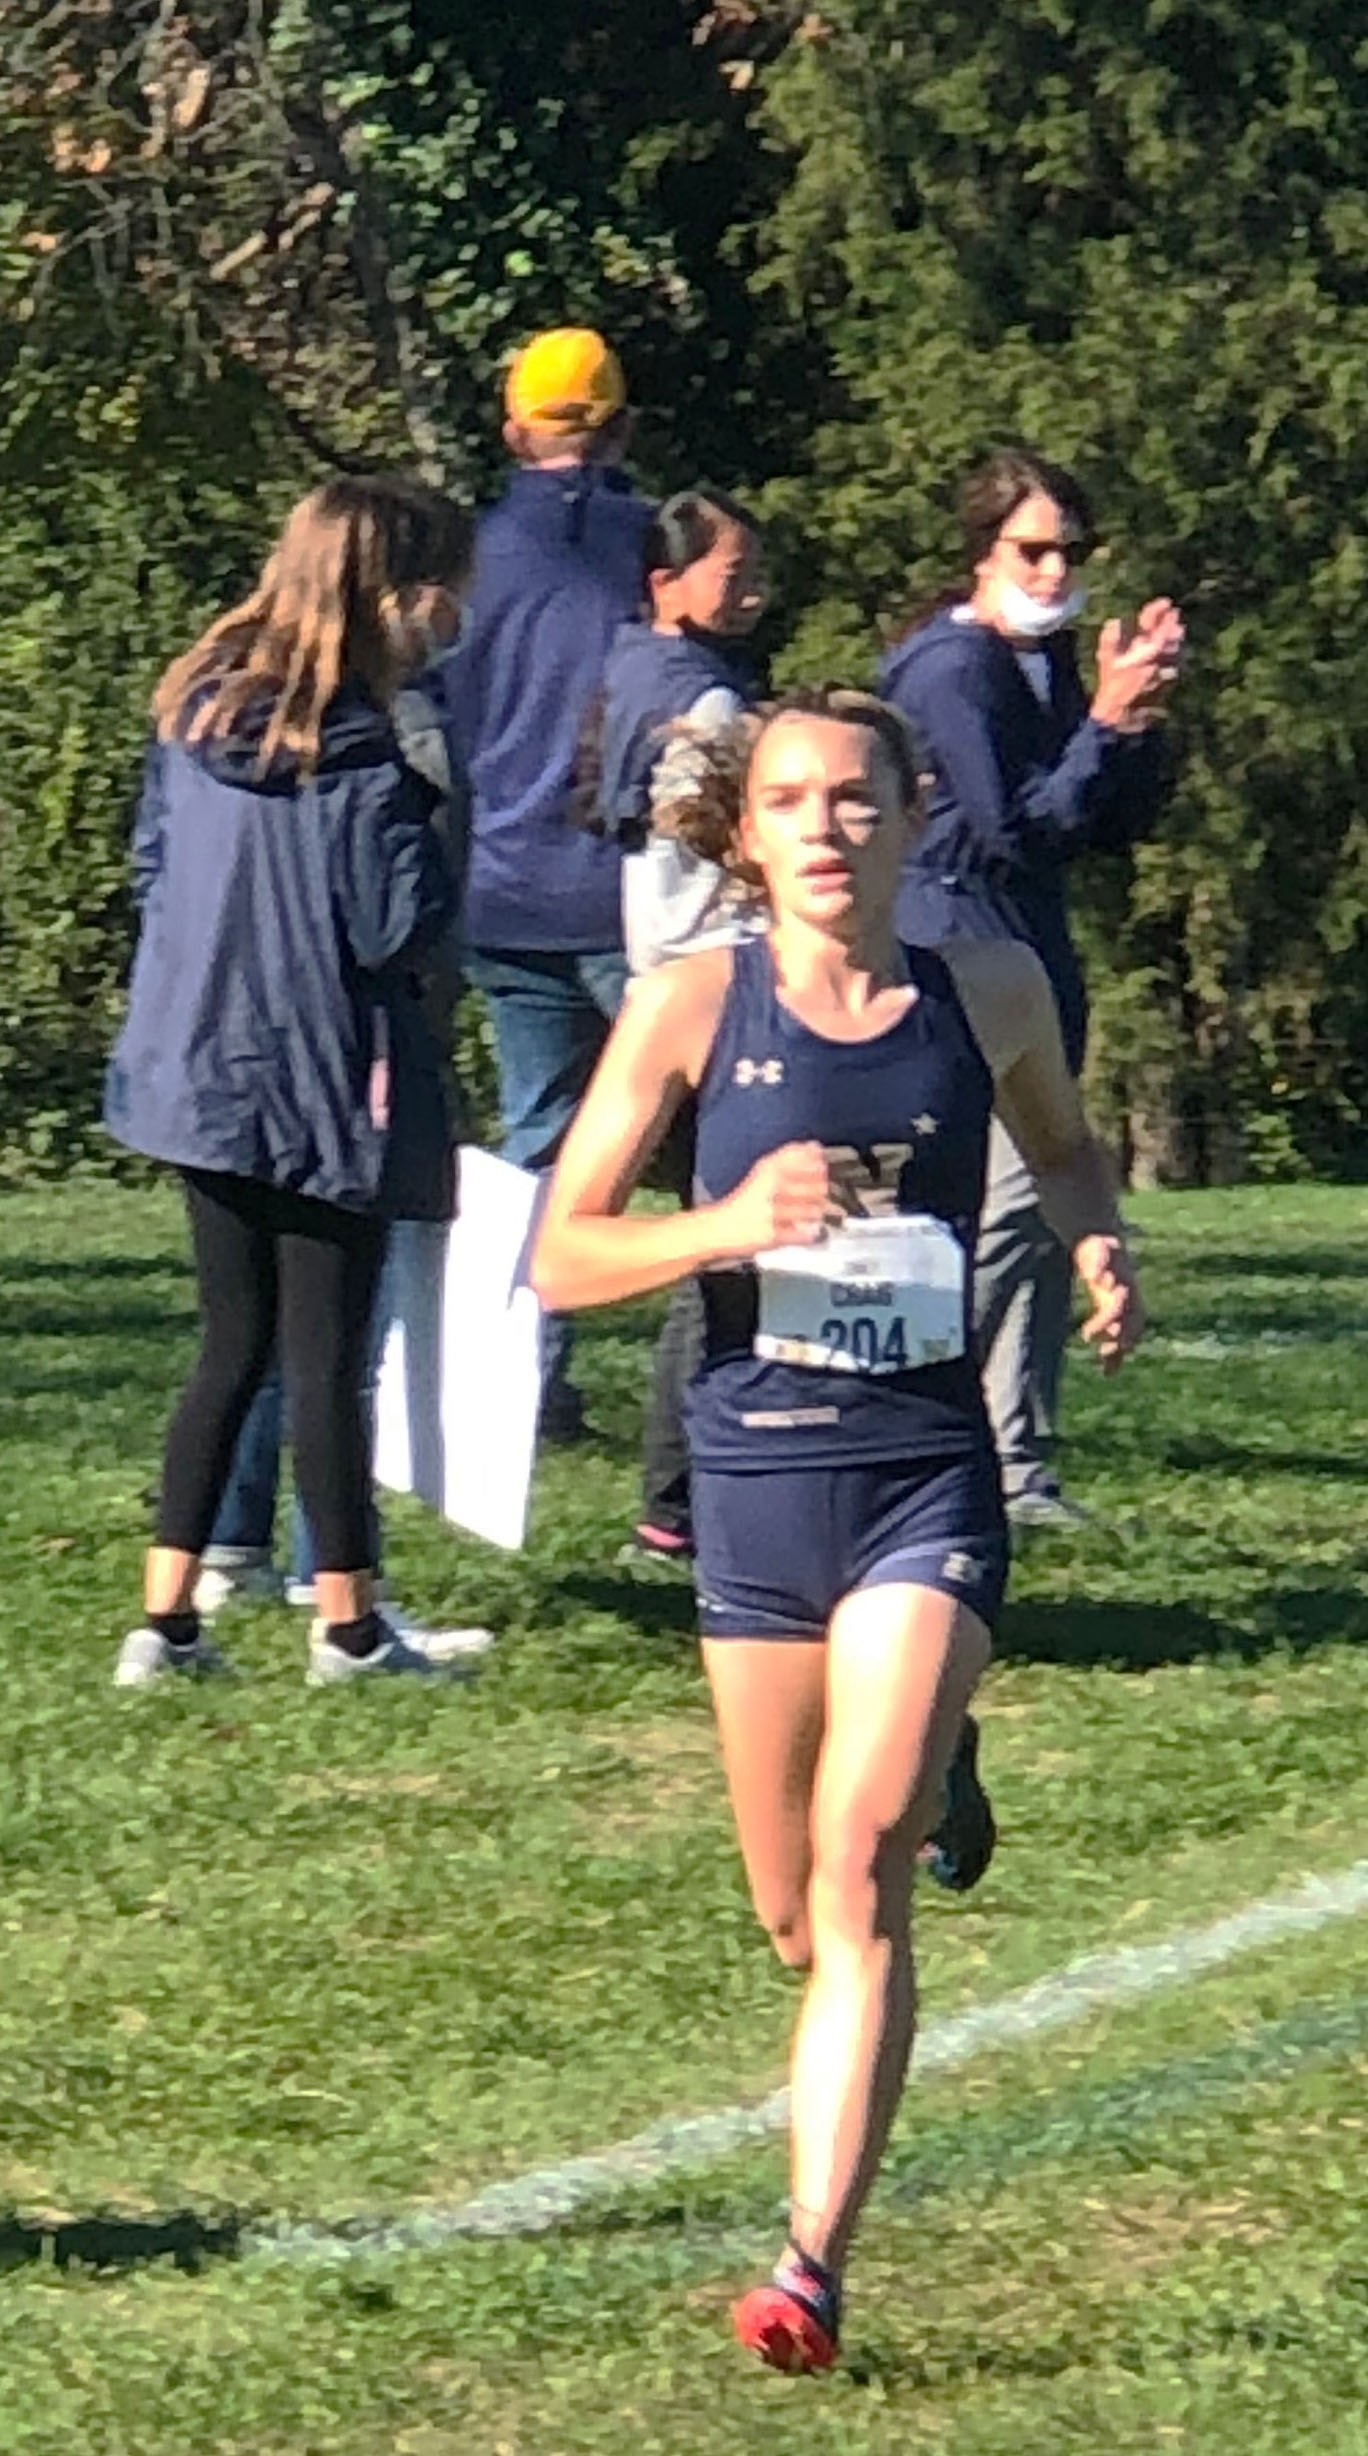 Emily Craig '17 has stellar race at 2020 Women's Cross Country Army-Navy Star Meet